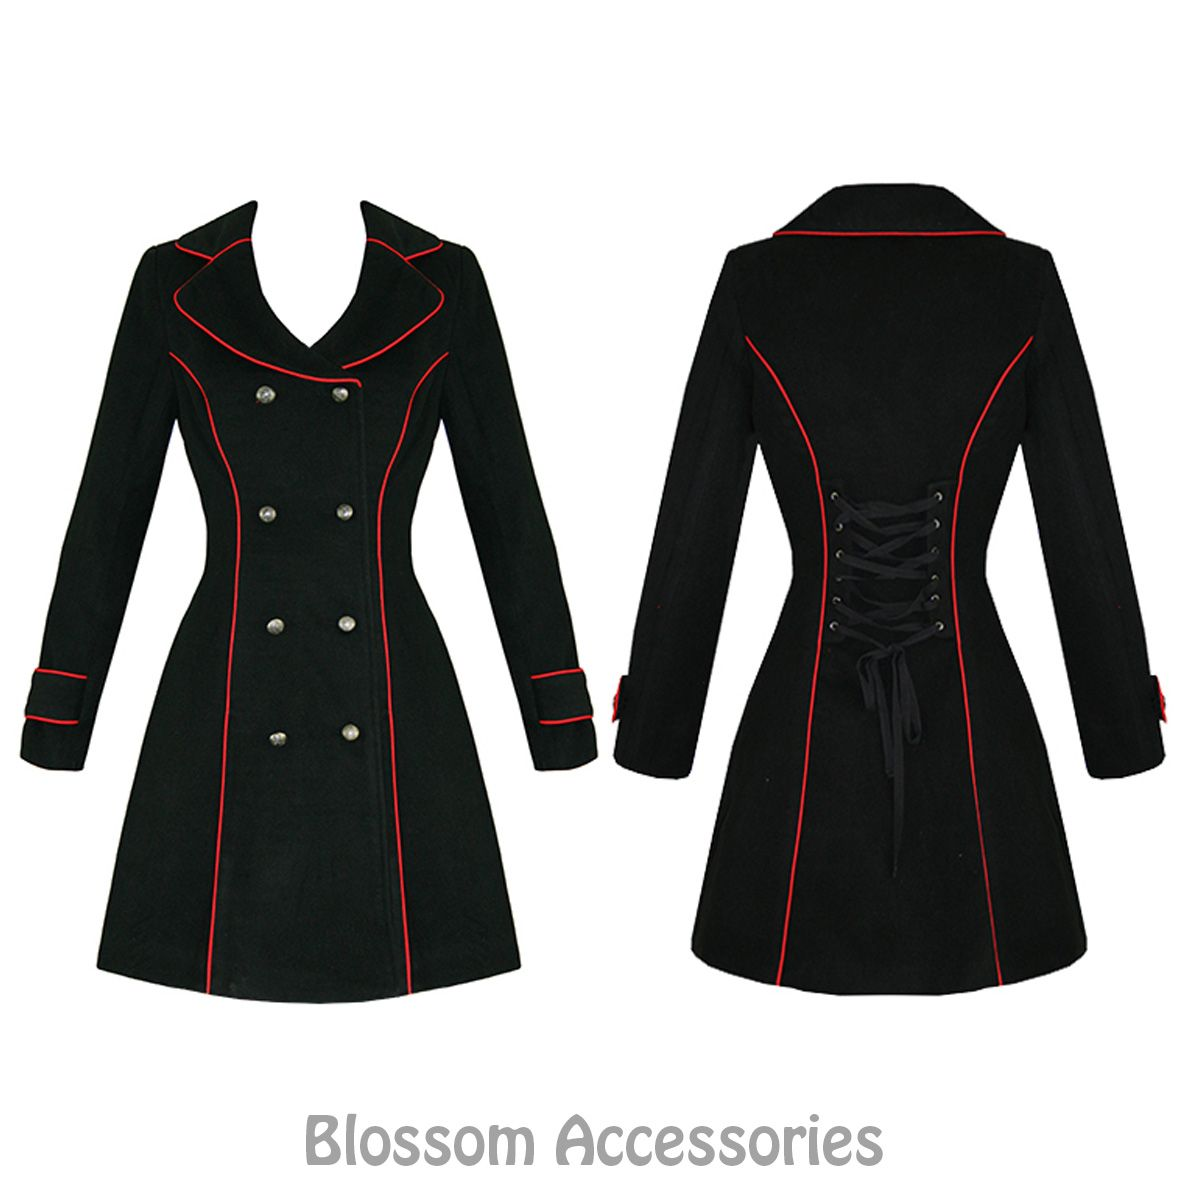 RKH54 Hearts & Roses Military Red Piping Coat Black Rockabilly ...